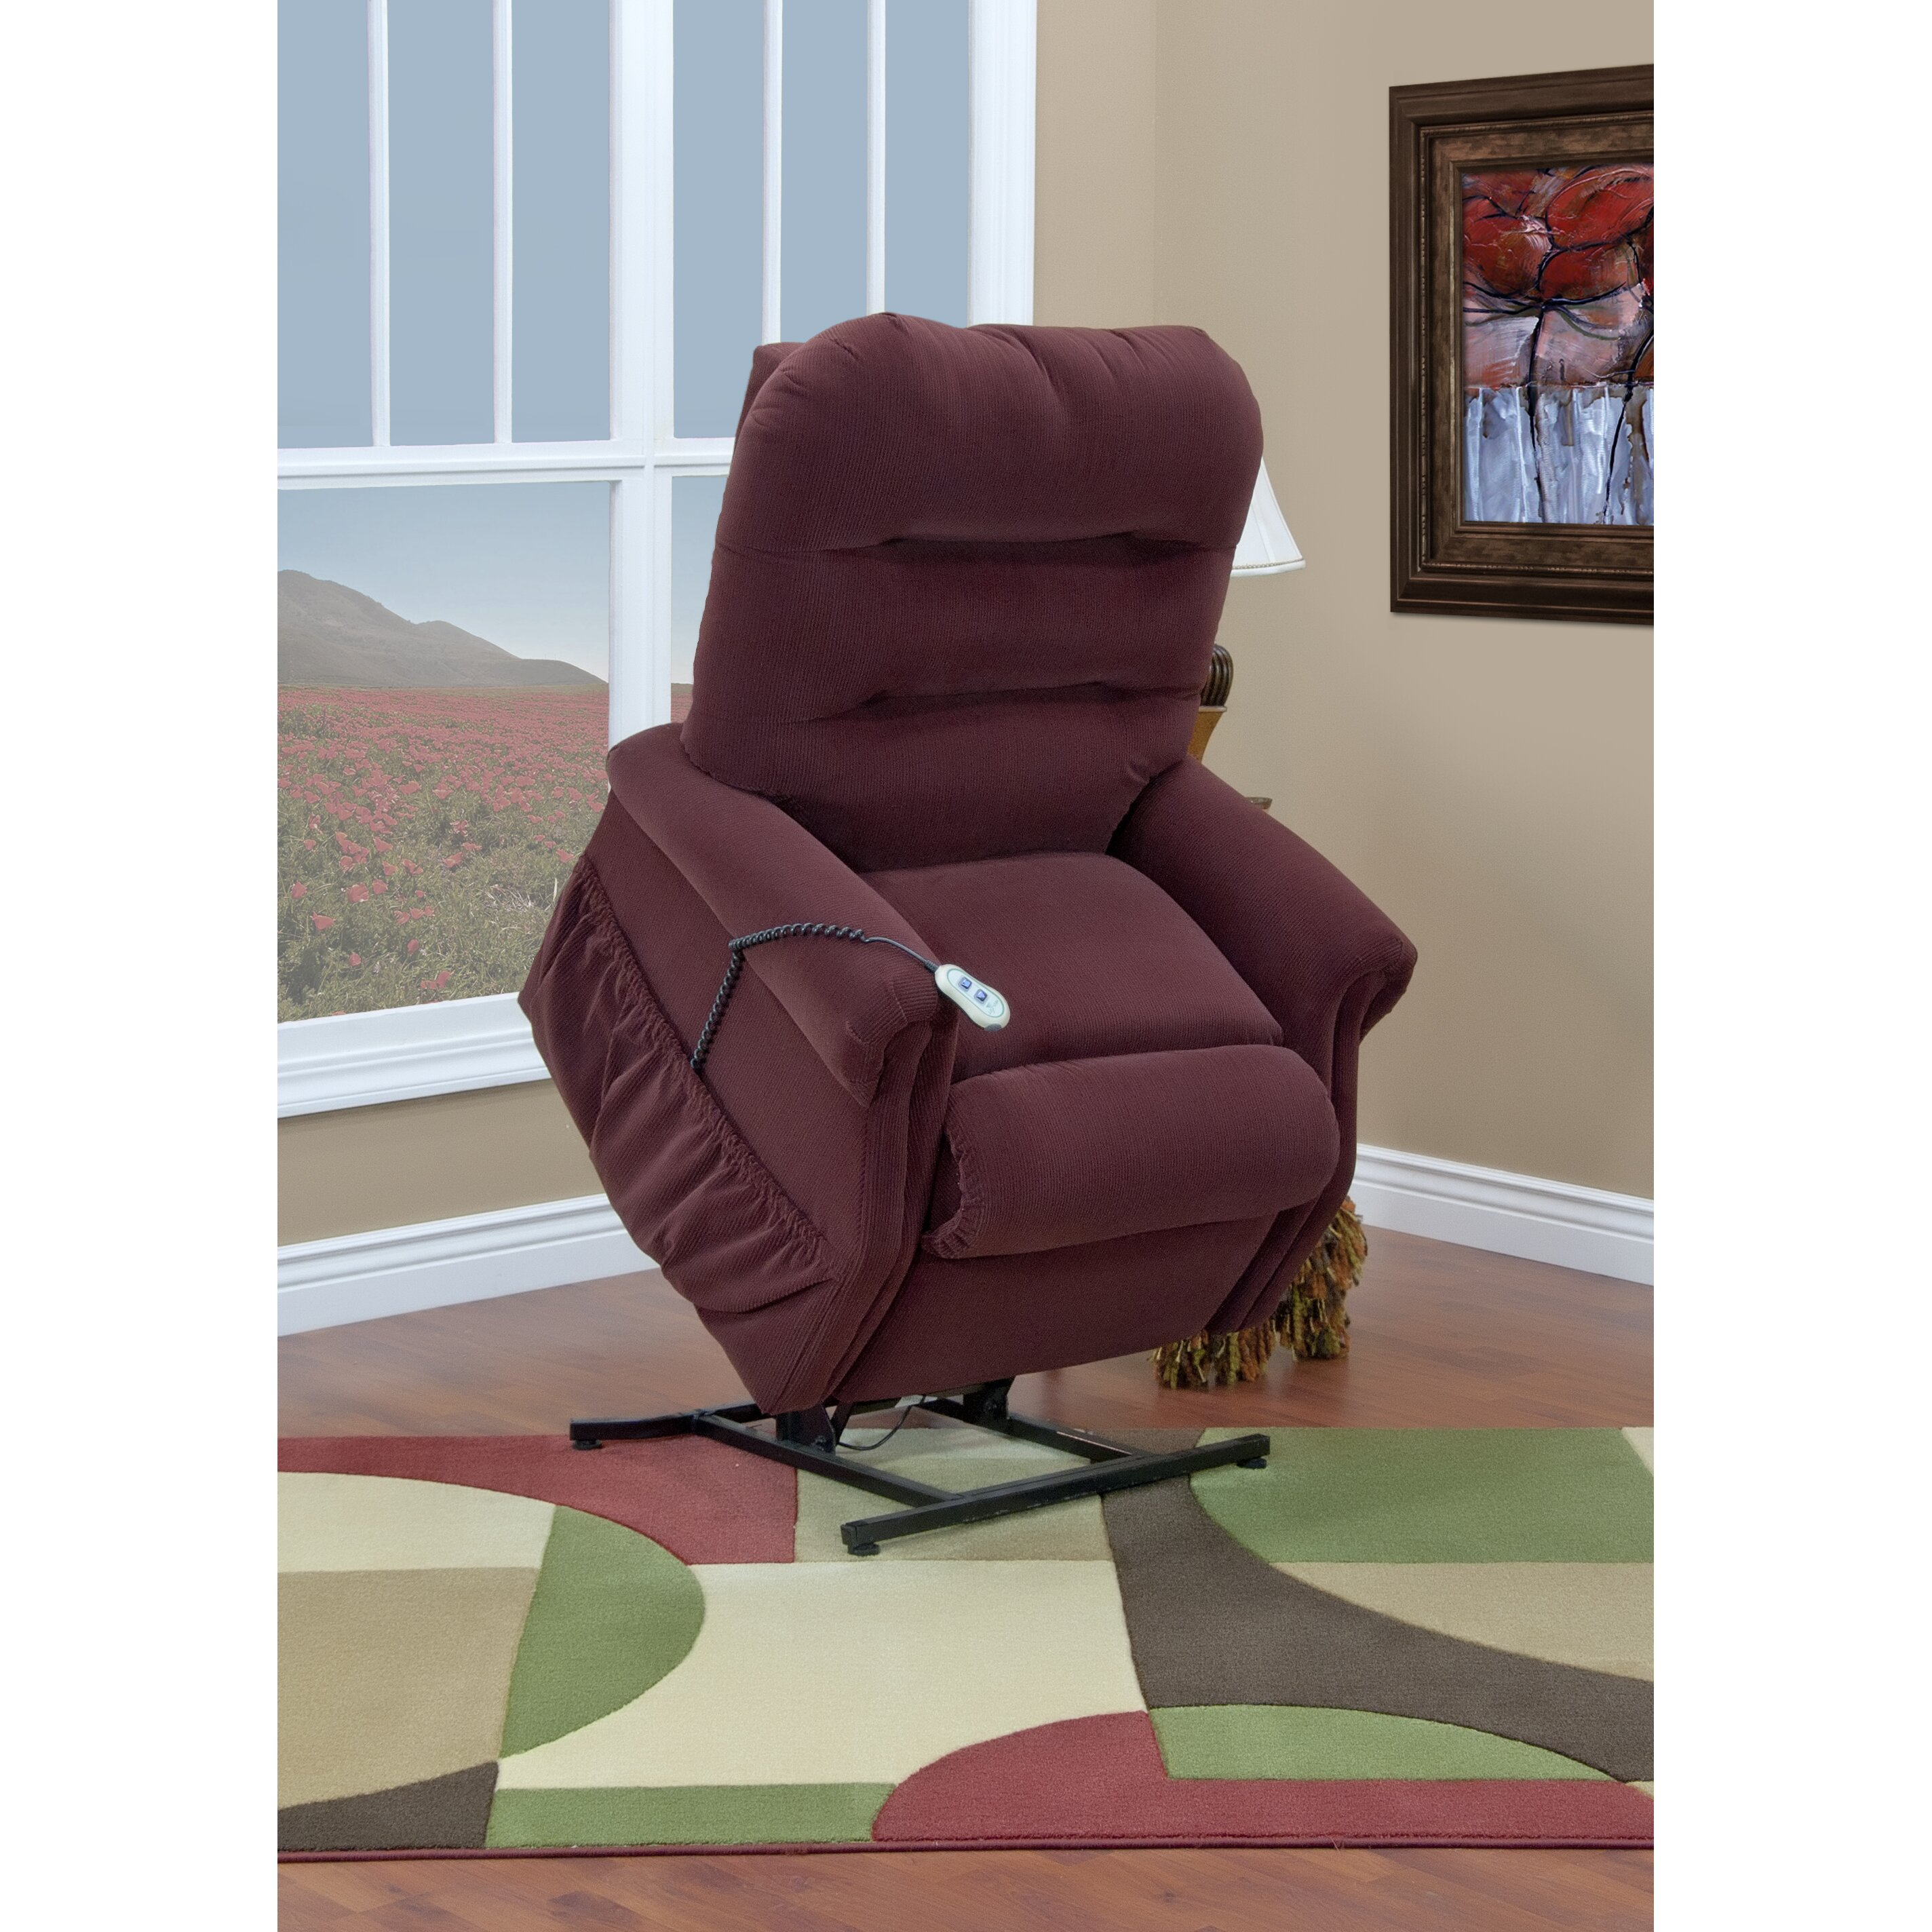 Med Lift 30 Series Wide Three Way Reclining Lift Chair